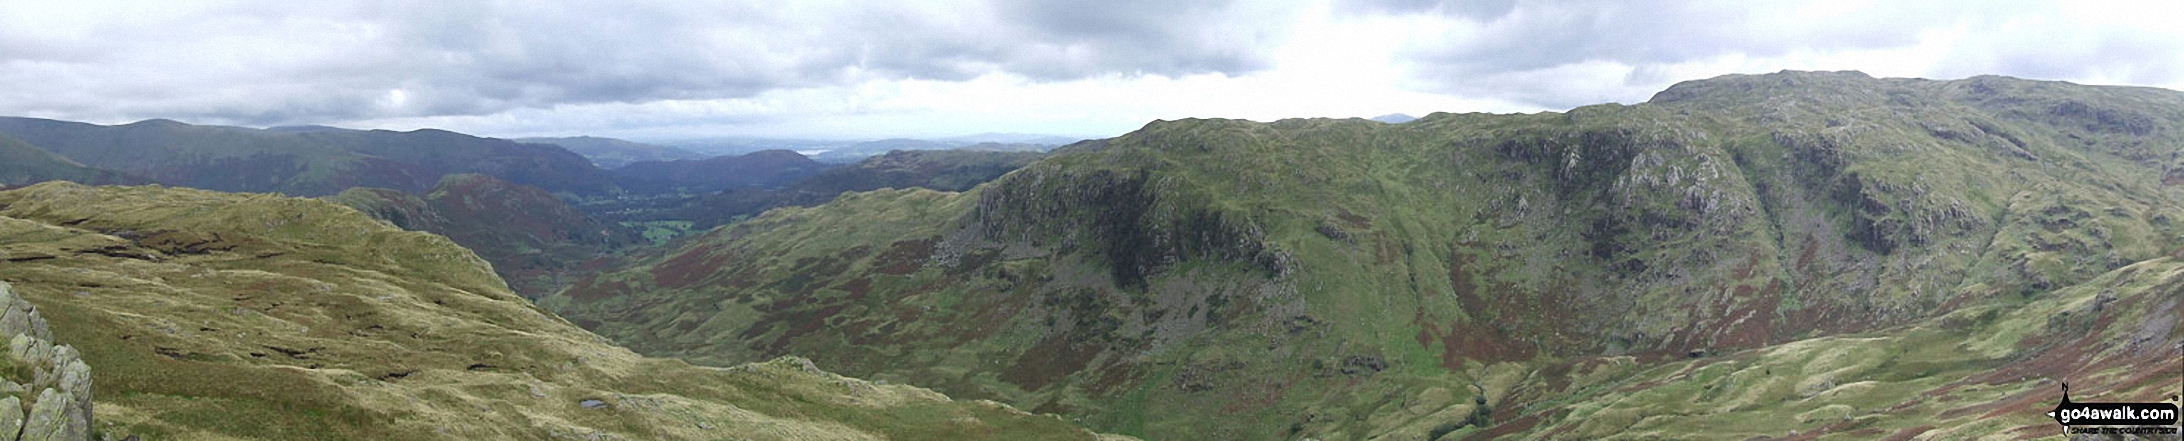 Deer Bields, Ferngill Crag and Broadstone Head from Calf Crag